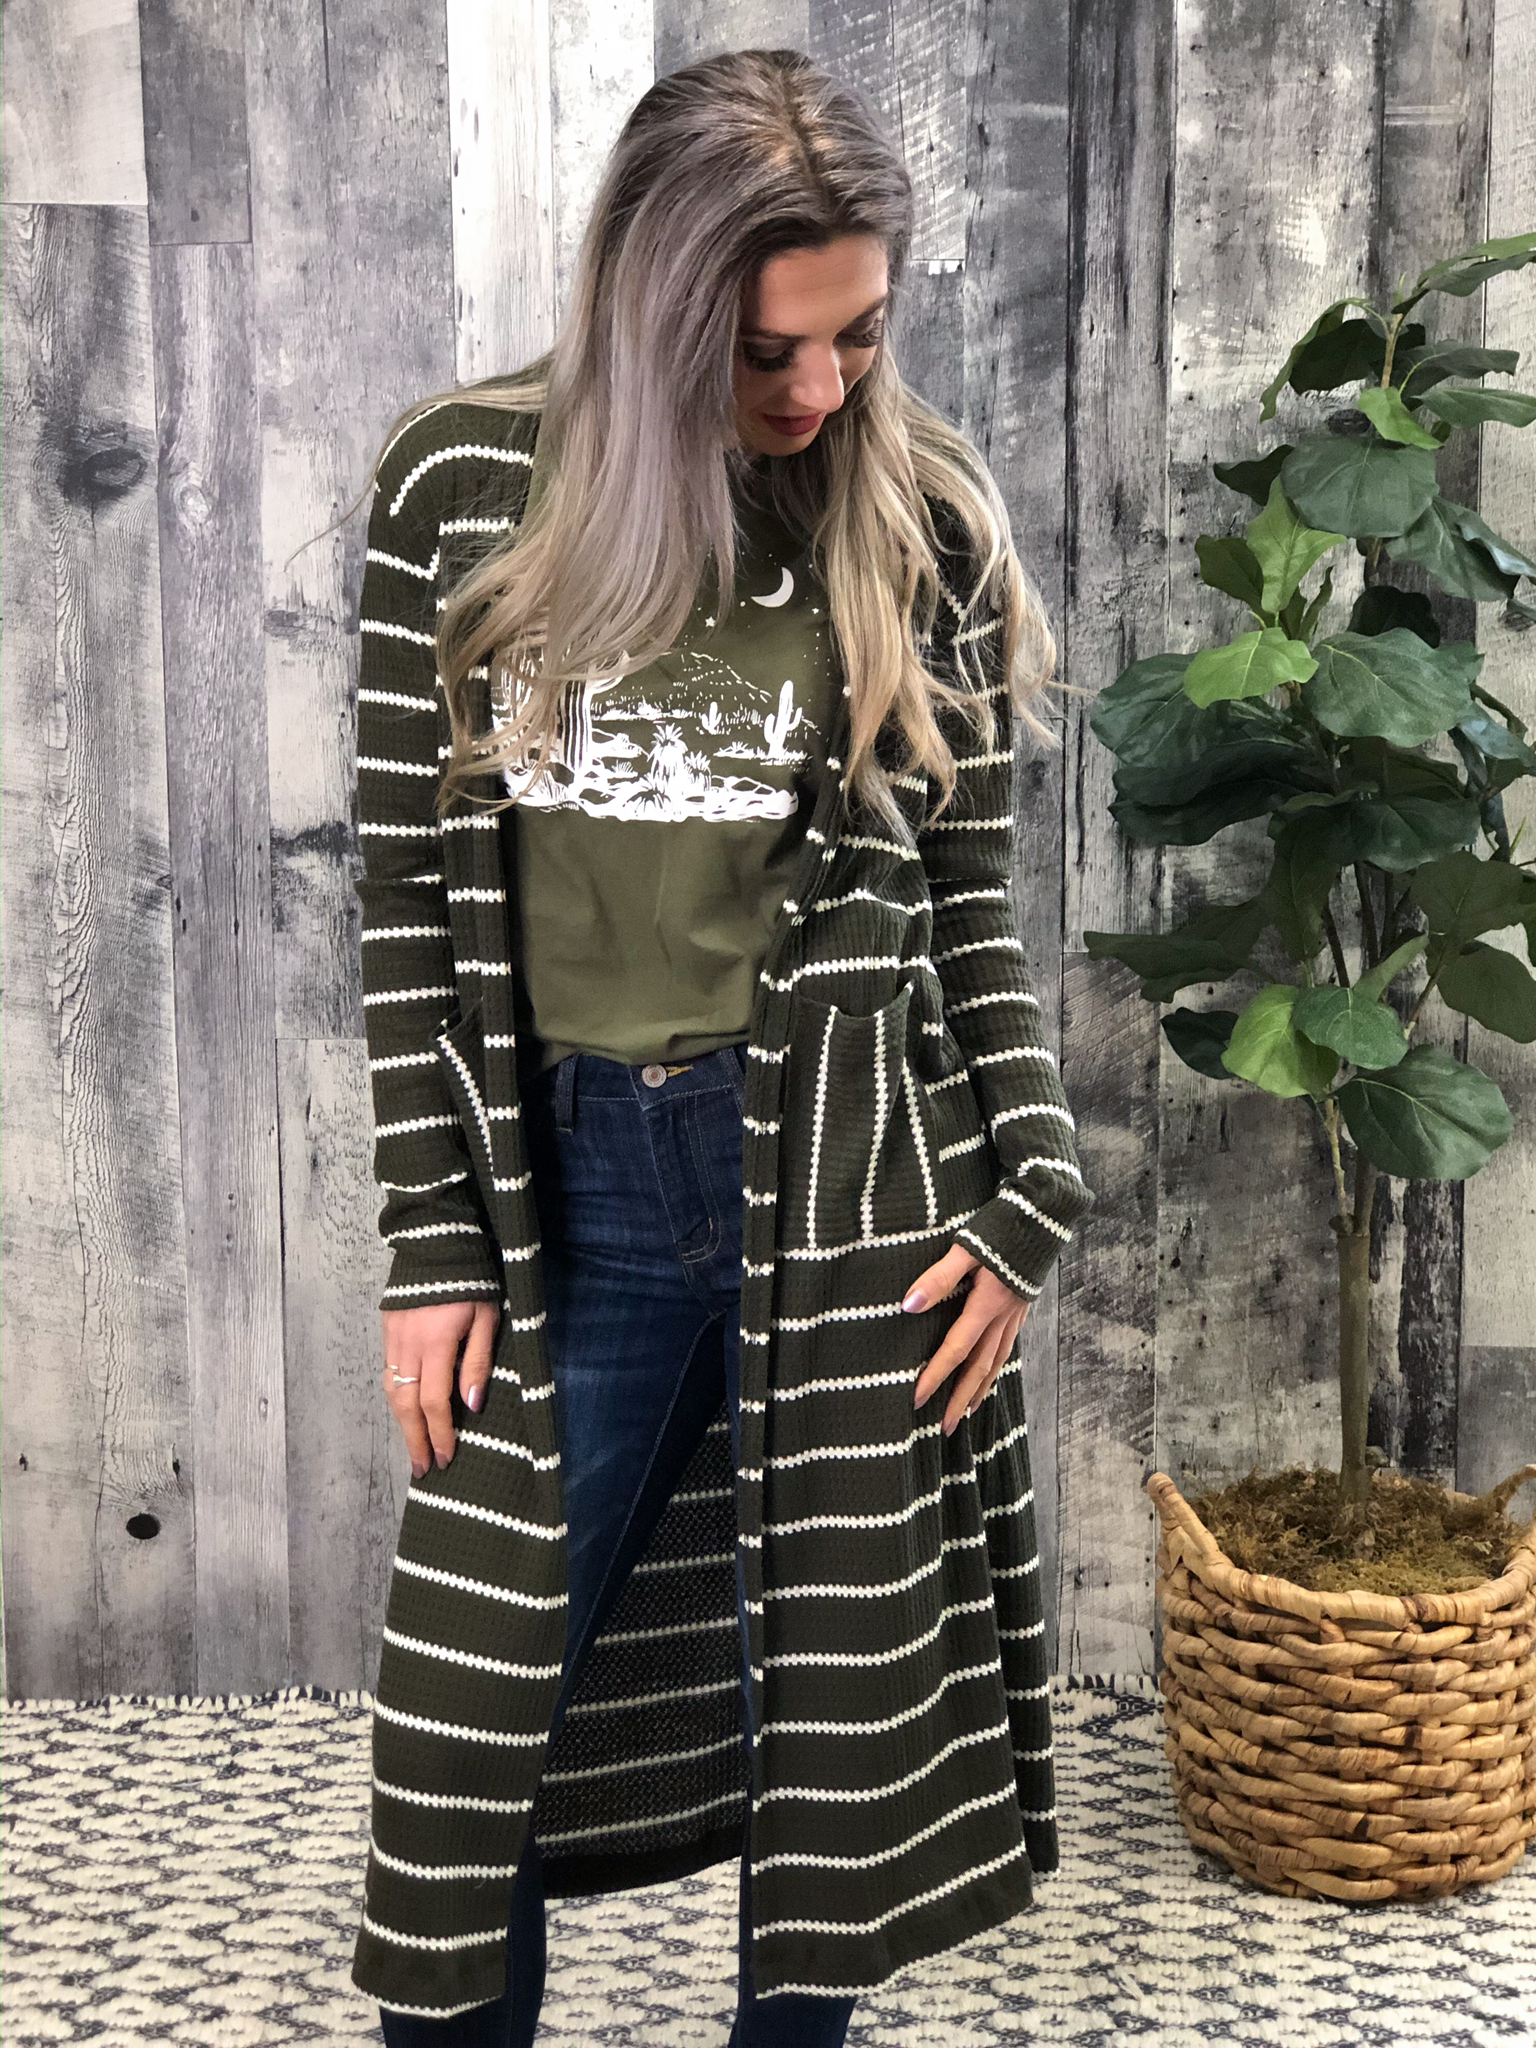 Thermal Cardigan with Stripes - Olive 999991